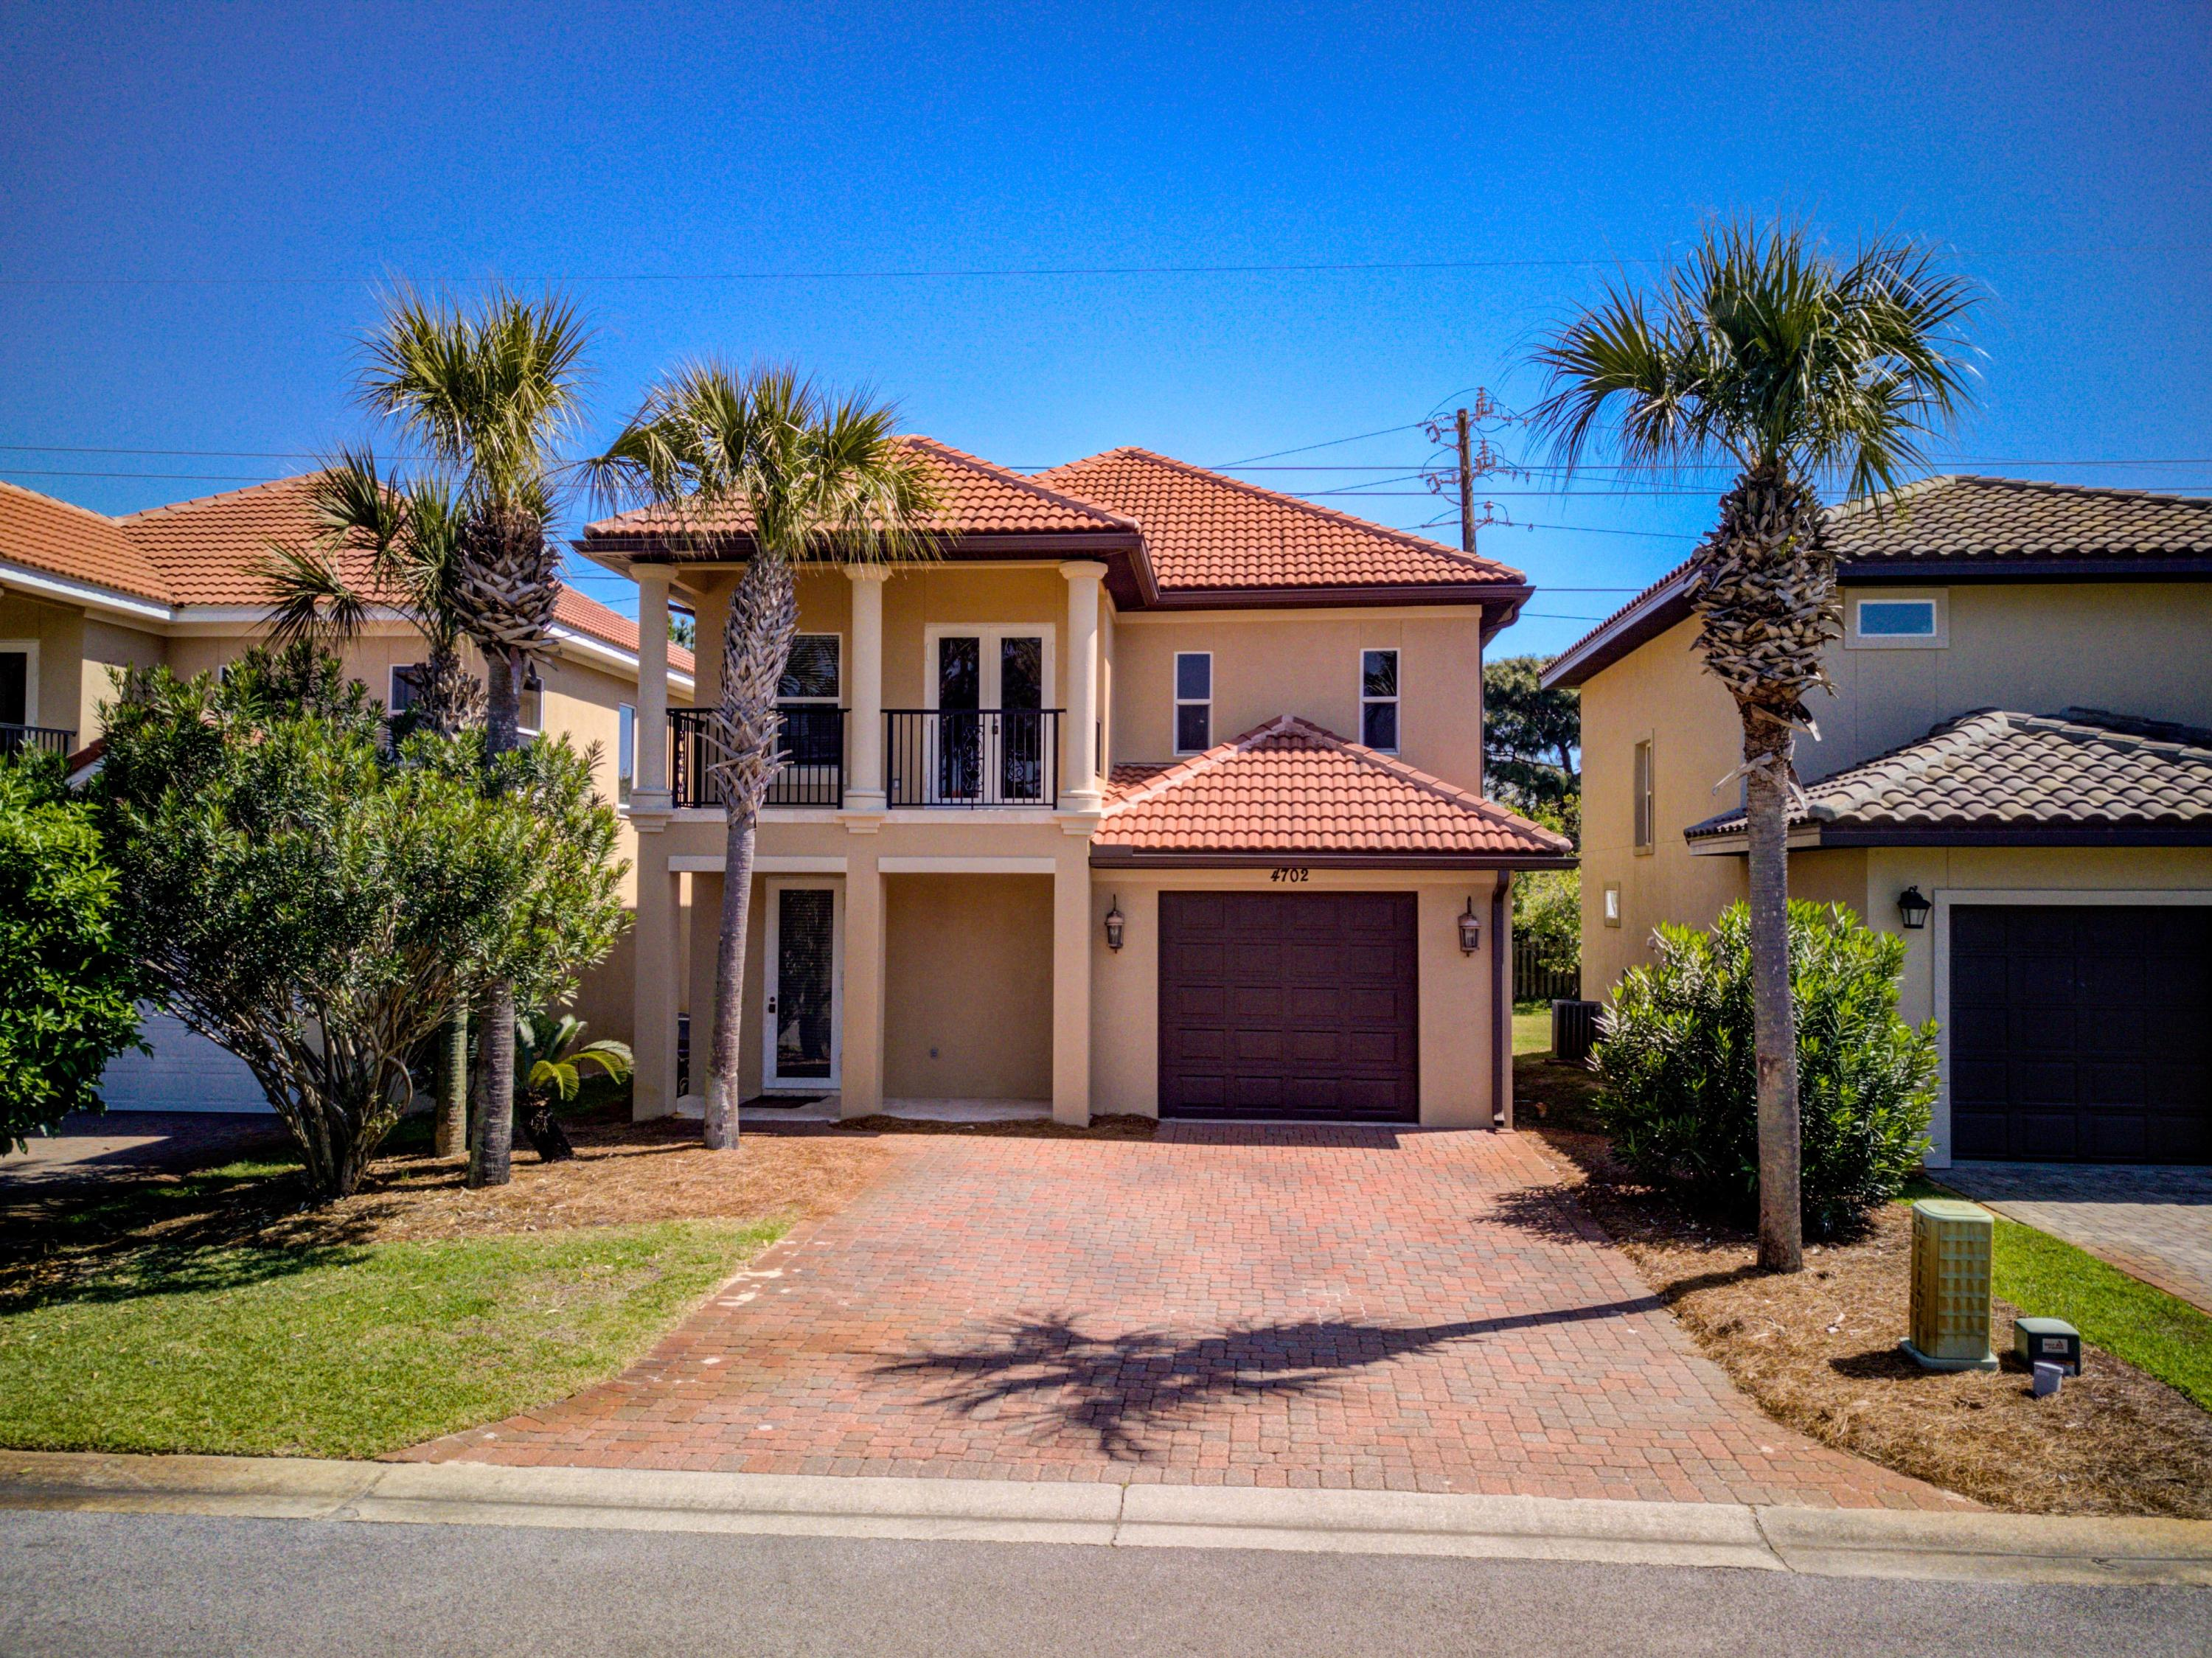 This attractive, Mediterranean-style home is based in a desirable neighborhood in a fabulous Destin location! Calusa Bay subdivision is north of Highway 98 across from Destiny East and not far from Regatta Bay, within easy access of many of Destin's best shopping, dining and resources--and of course the beautiful beach and sparkling waters of the Gulf of Mexico! This residence backs up to green space, including a jogging trail, and overlooks a lake. It features an open living/dining room/kitchen with travertine floors, black granite kitchen counters and a breakfast bar. All 3 bedrooms are upstairs, including the large master bedroom with dual sinks, a jetted tub and a large balcony. The home includes a one-car garage with storage space.     Calusa Bay offers its owners a lovely poo gated entry and a fantastic home base from which to enjoy the very best of the Emerald Coast!